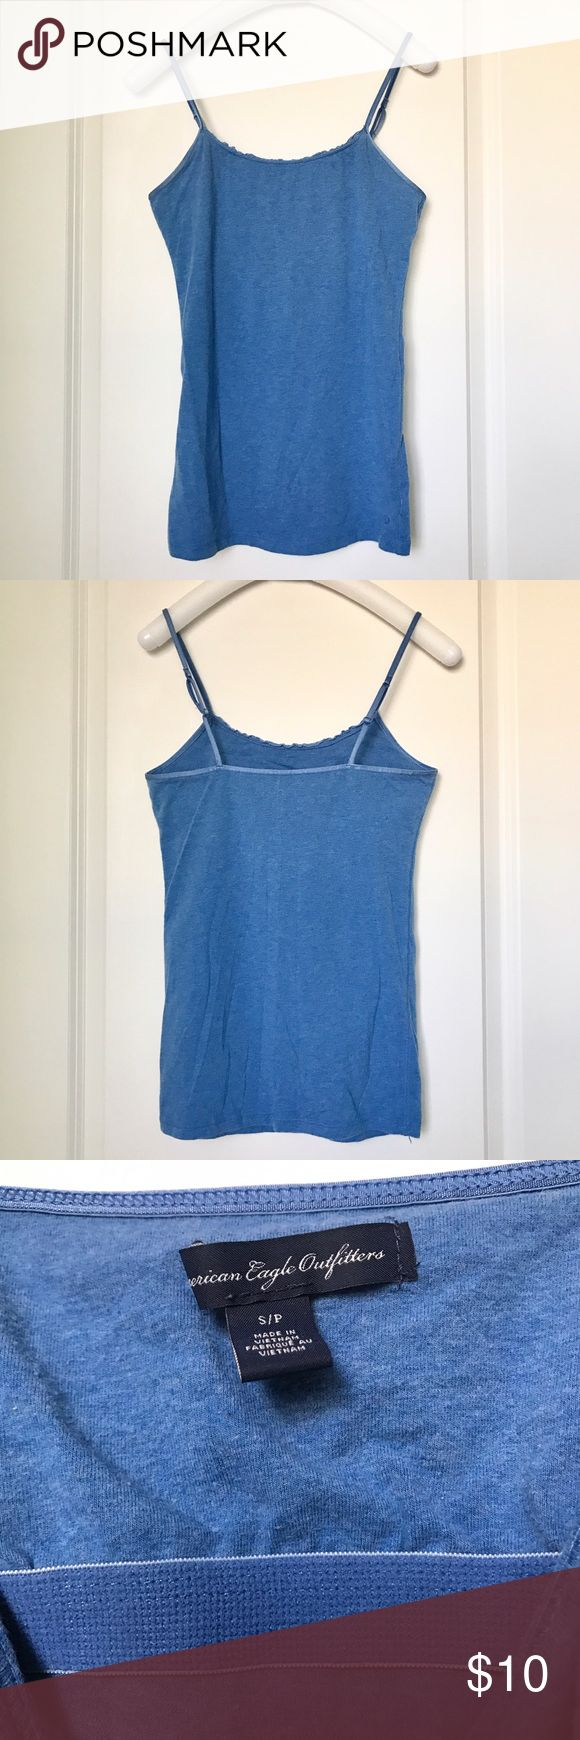 Heather Blue Camisole with Built-In Shelf Bra Burnt Orange Camisole with Built-In Shelf Bra. Cotton/spandex blend. Bundle 2 or more items for 20% off and combined shipping! Sorry, no trades. American Eagle Outfitters Tops Camisoles